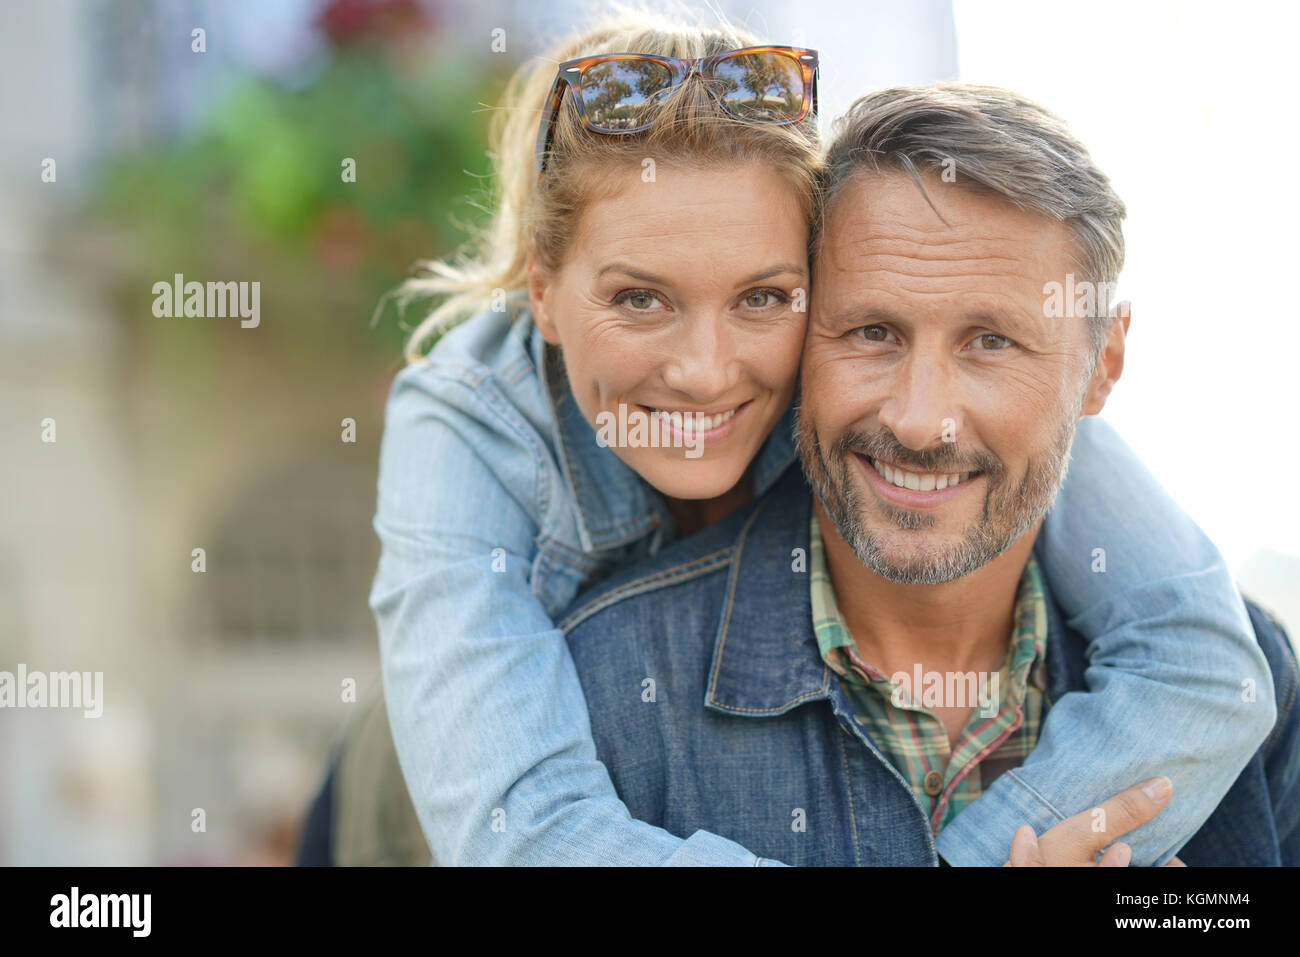 Man giving piggyback ride to woman - Stock Image